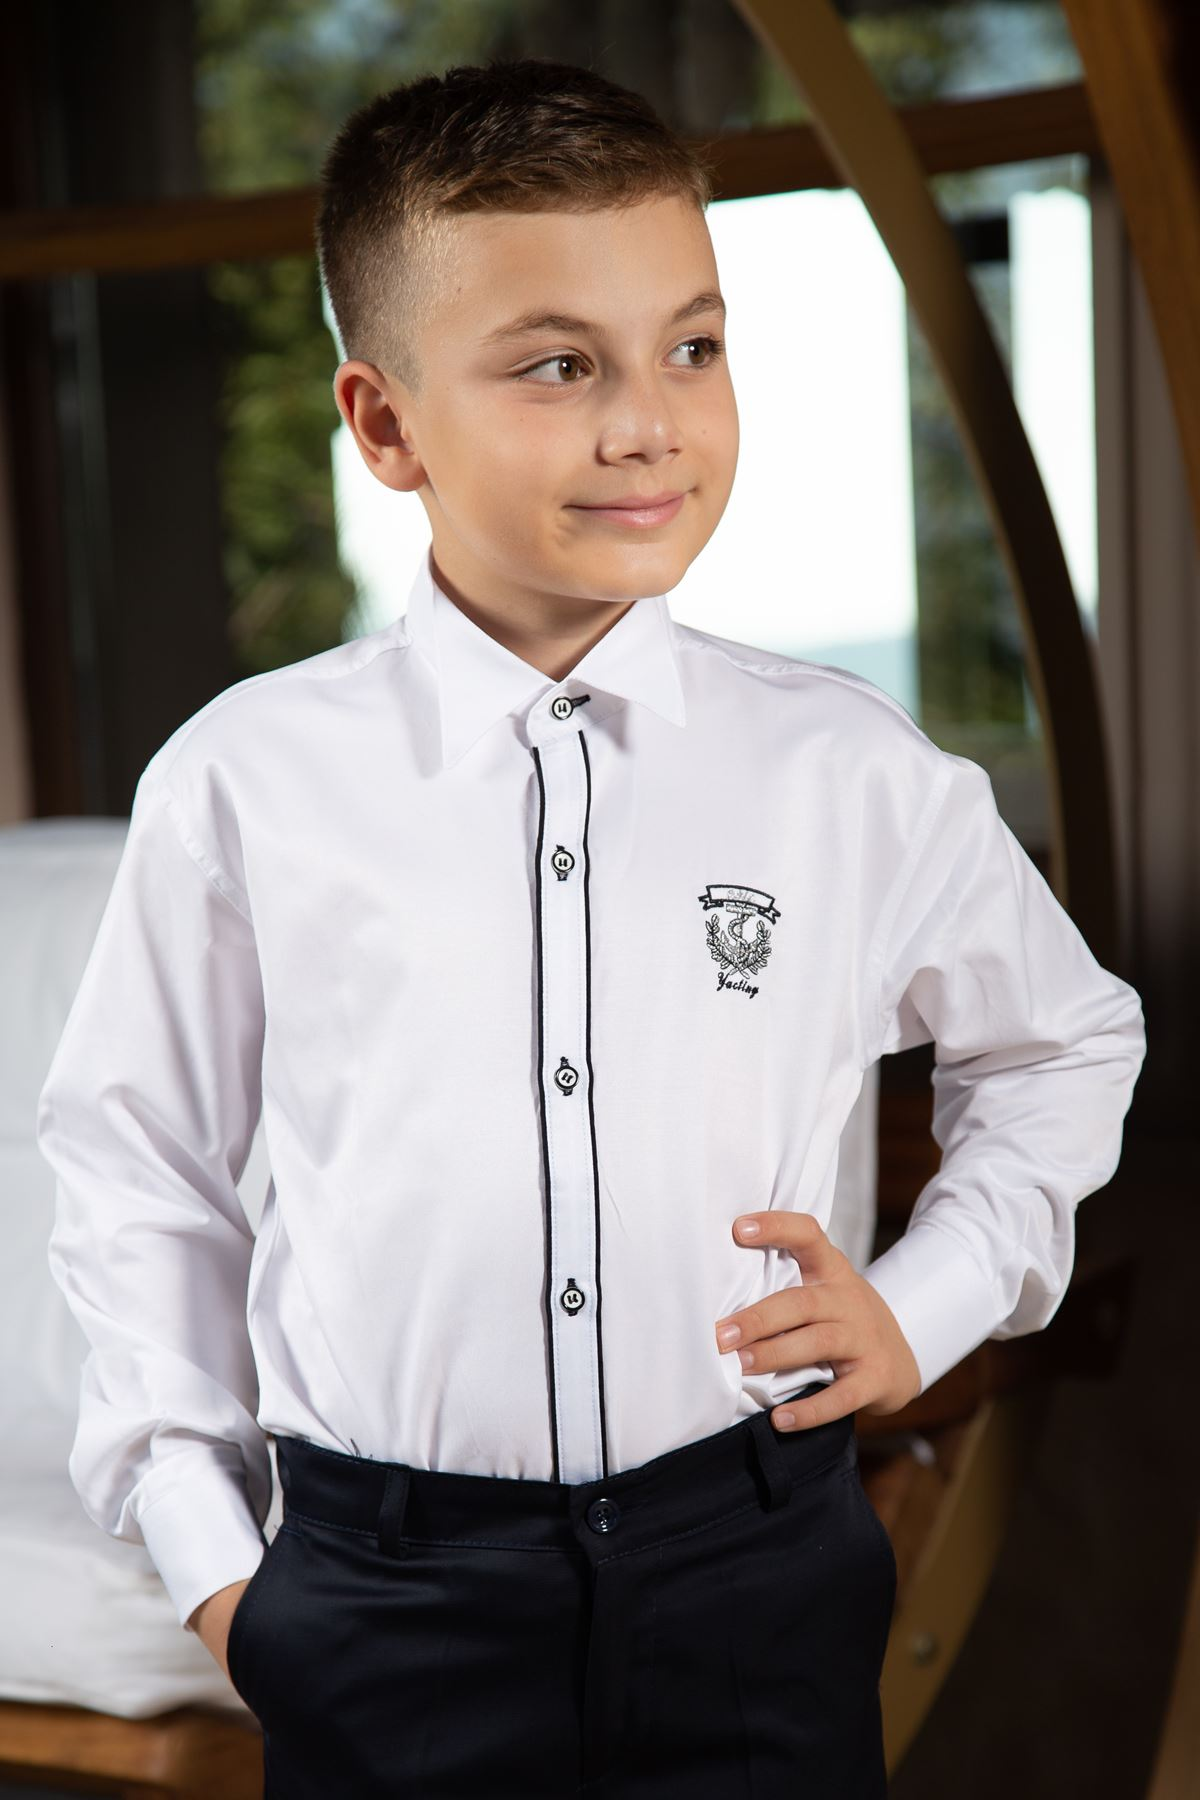 Ankle collar, double black piping, embroidery detail, Boy Shirt 1005 White